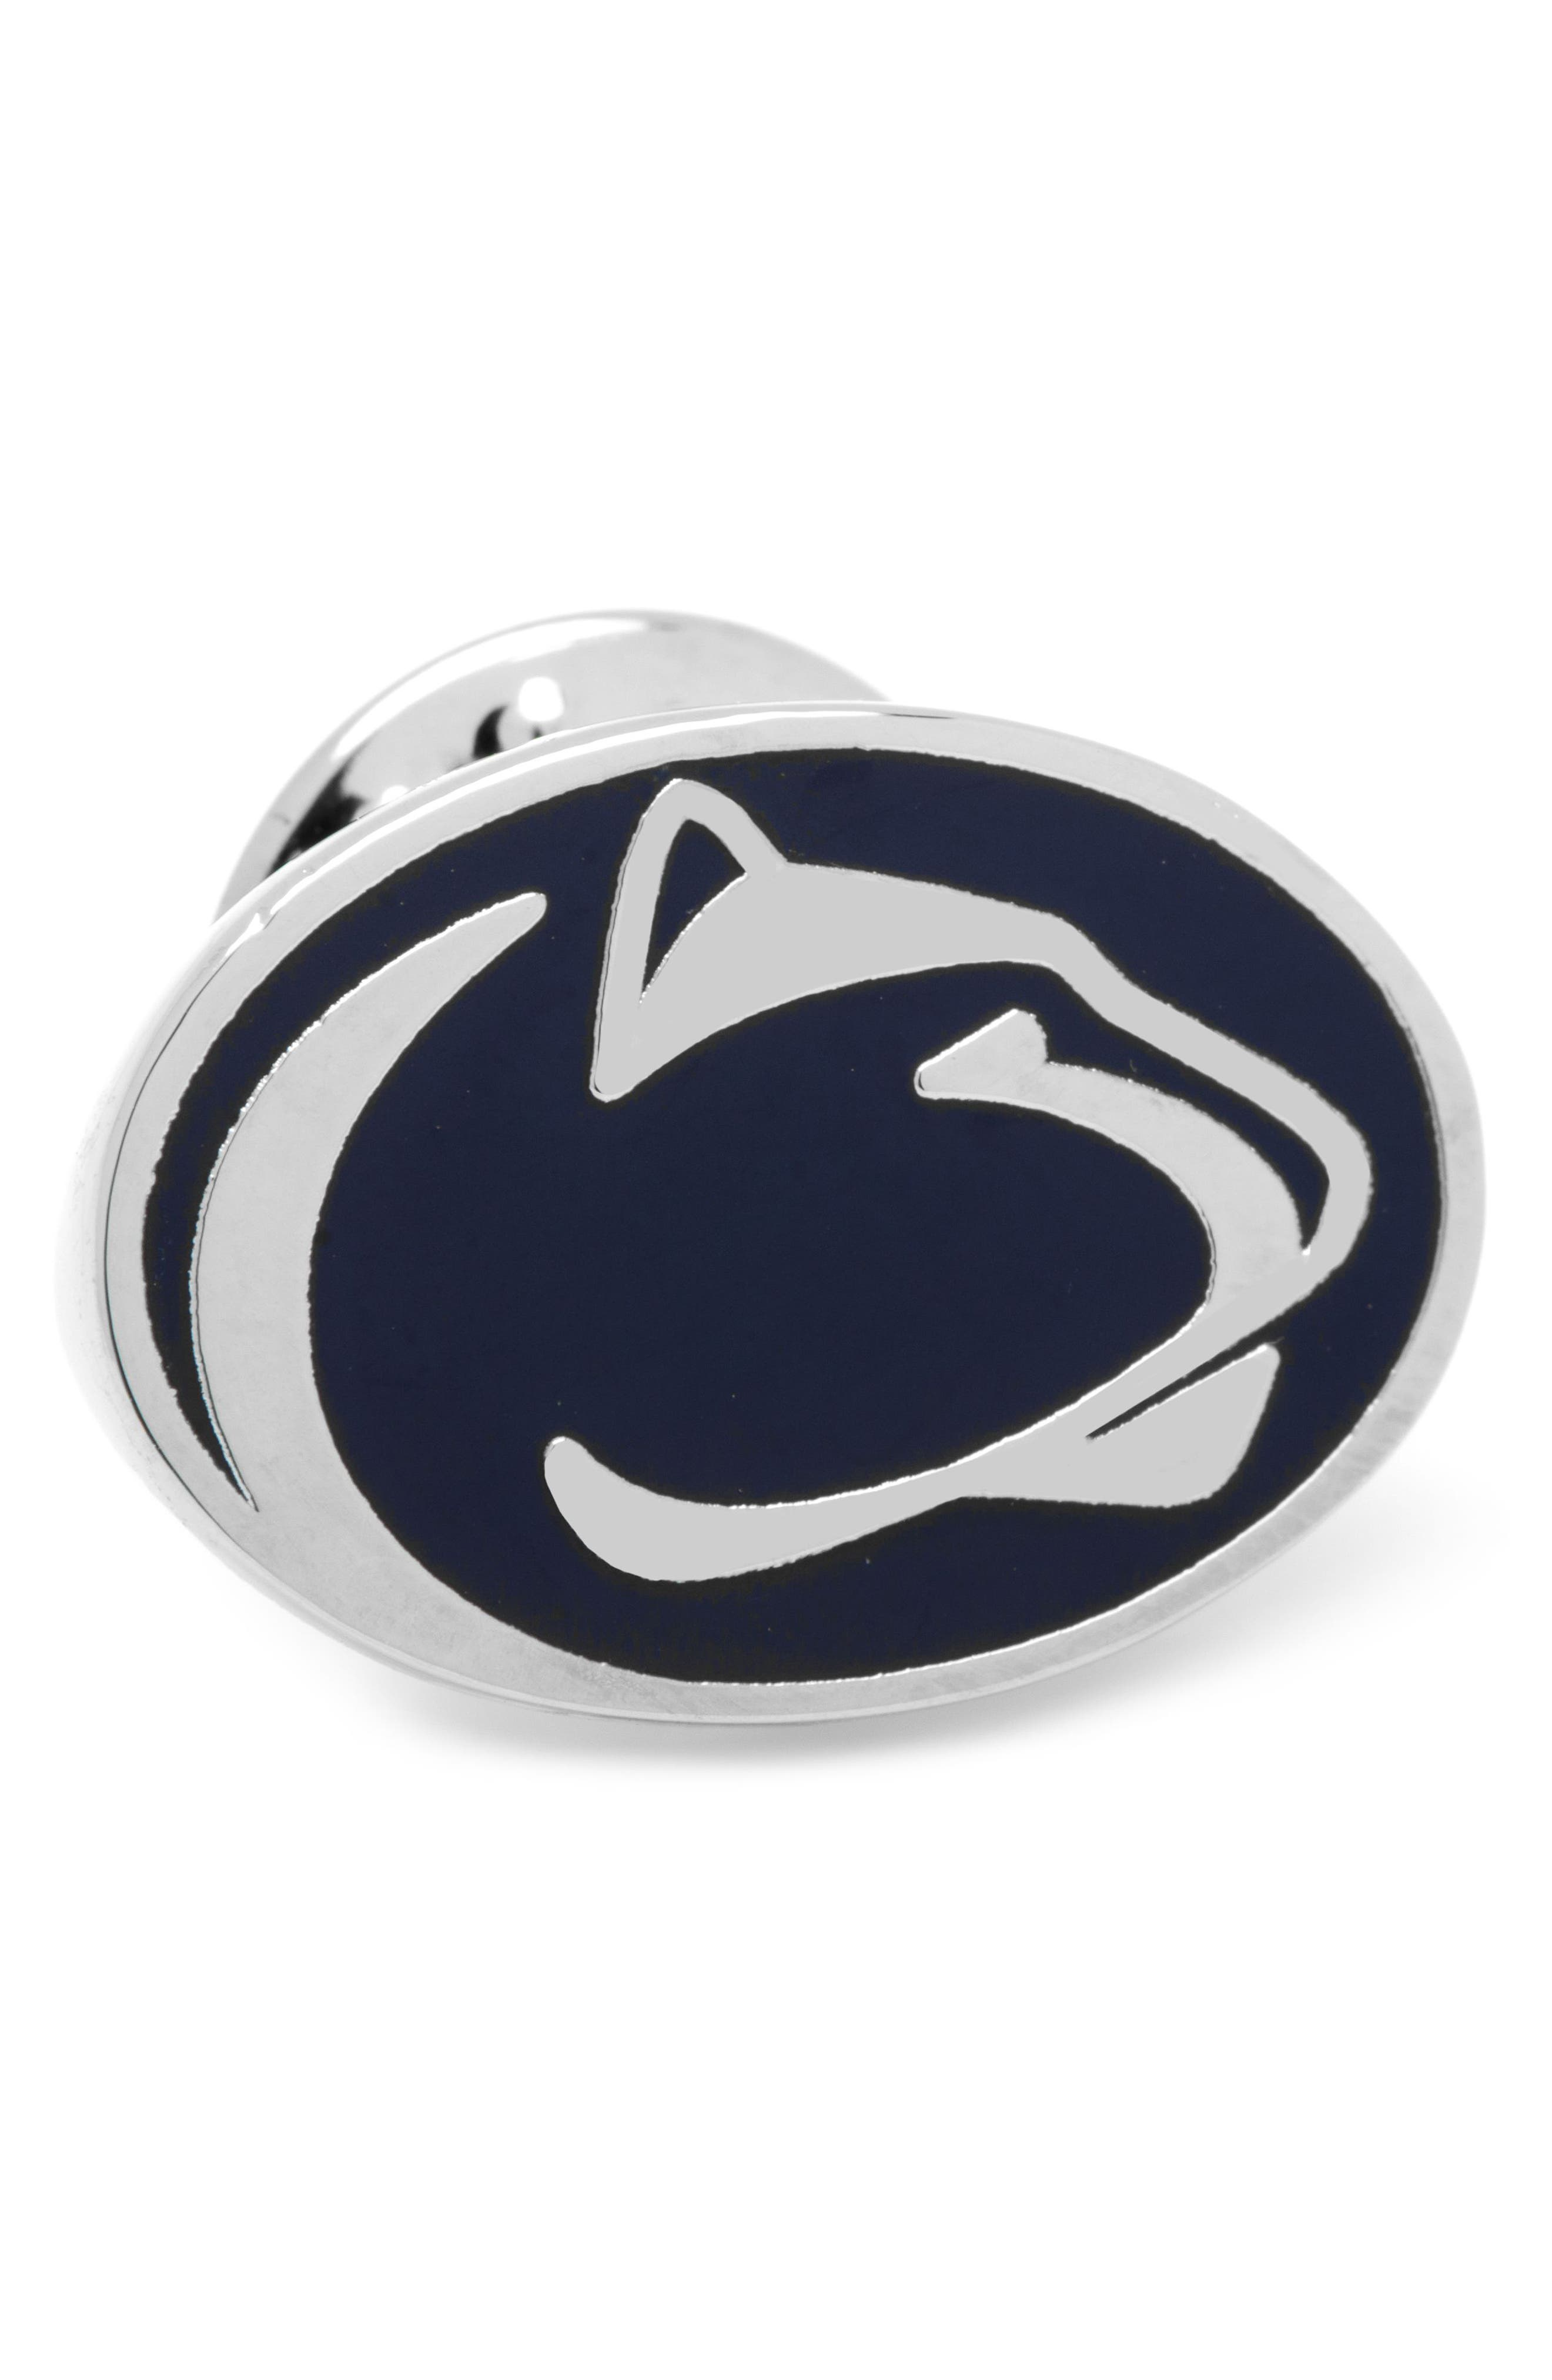 Penn State University Nittany Lions Lapel Pin,                         Main,                         color, BLUE